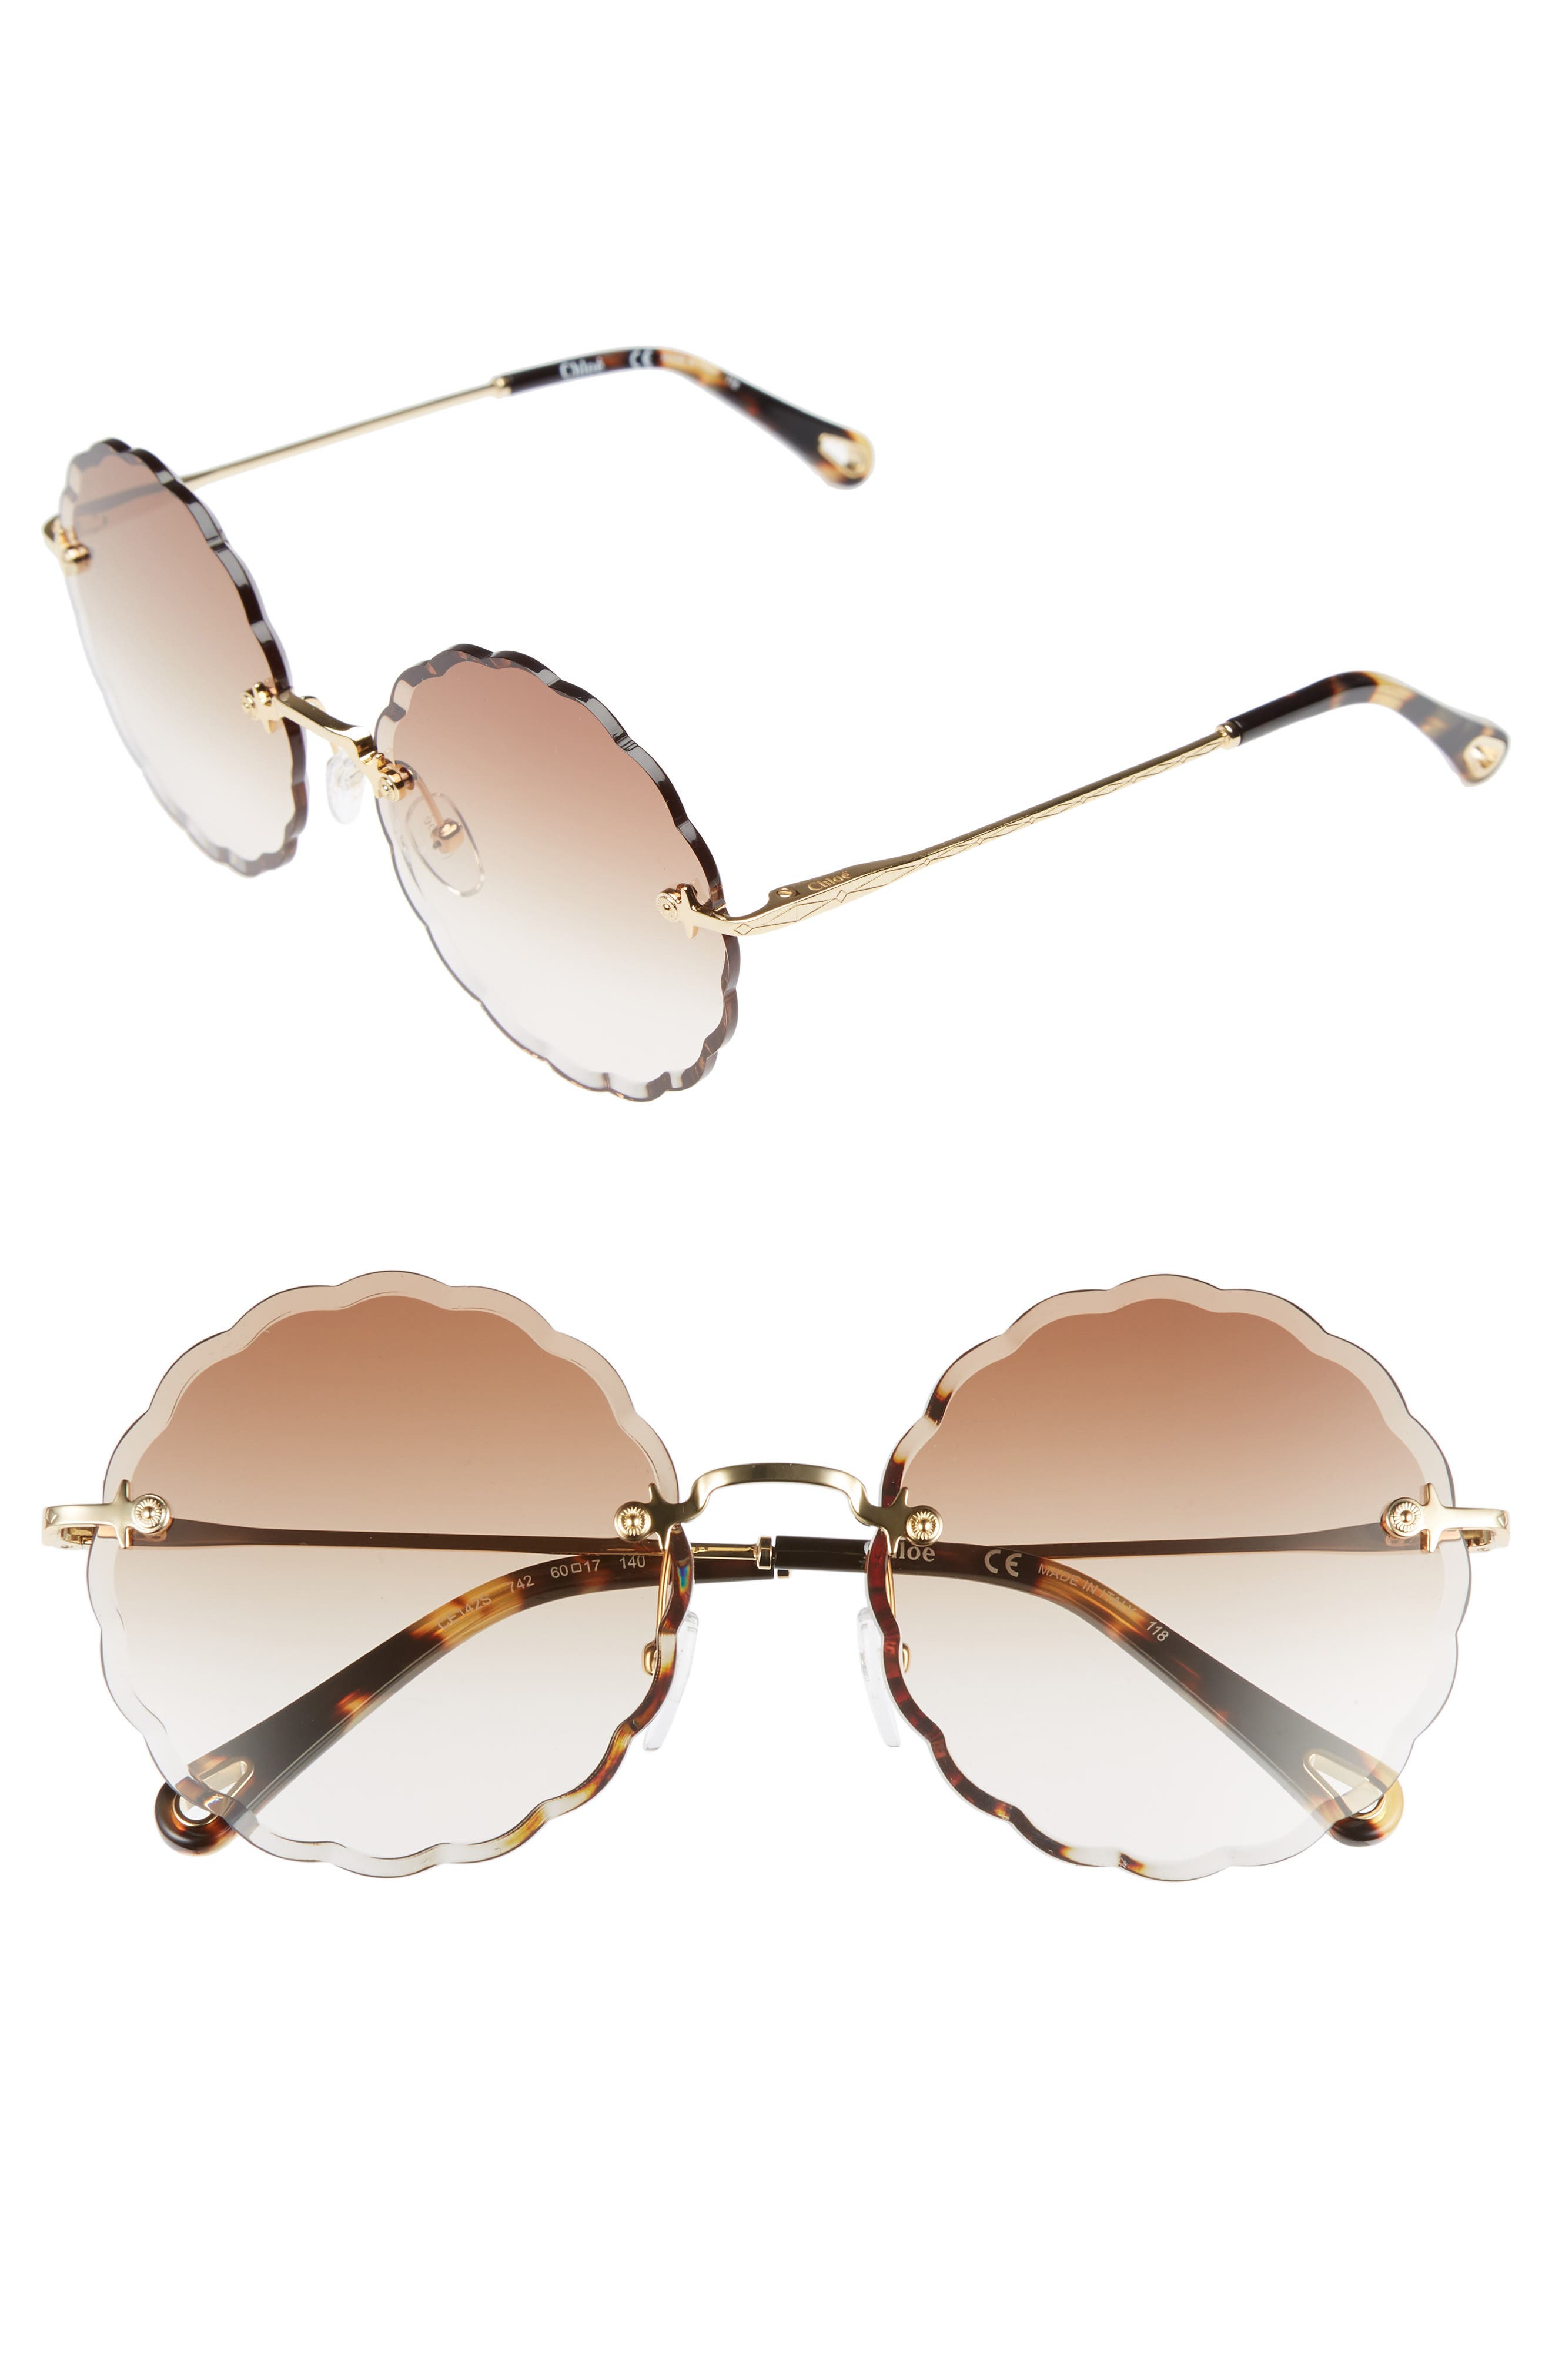 CHLOÉ, Rosie 60mm Scalloped Rimless Sunglasses, Main thumbnail 1, color, GOLD/ GRADIENT BROWN